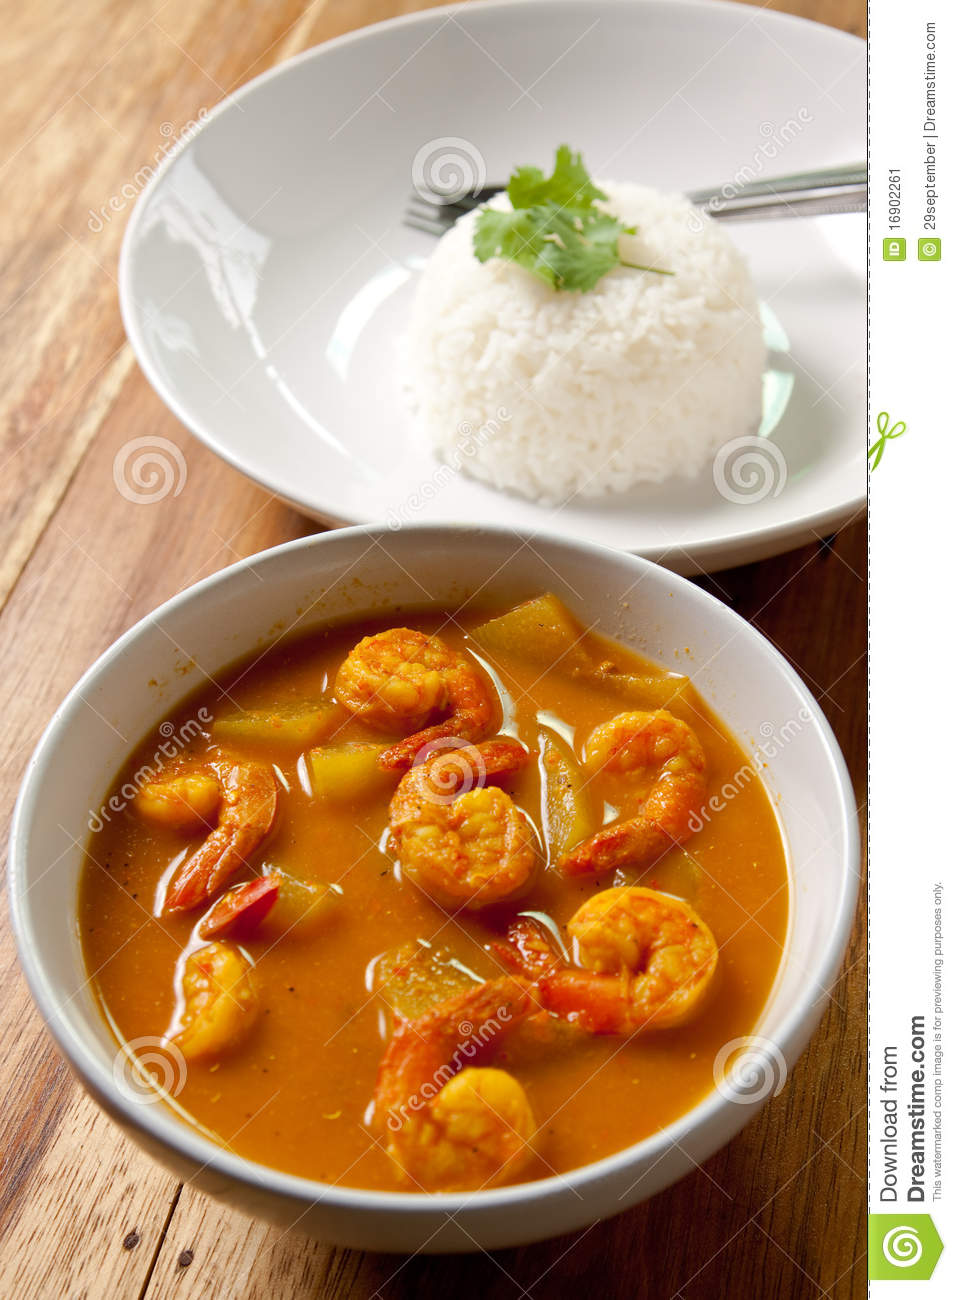 Shrimp curry with rice.